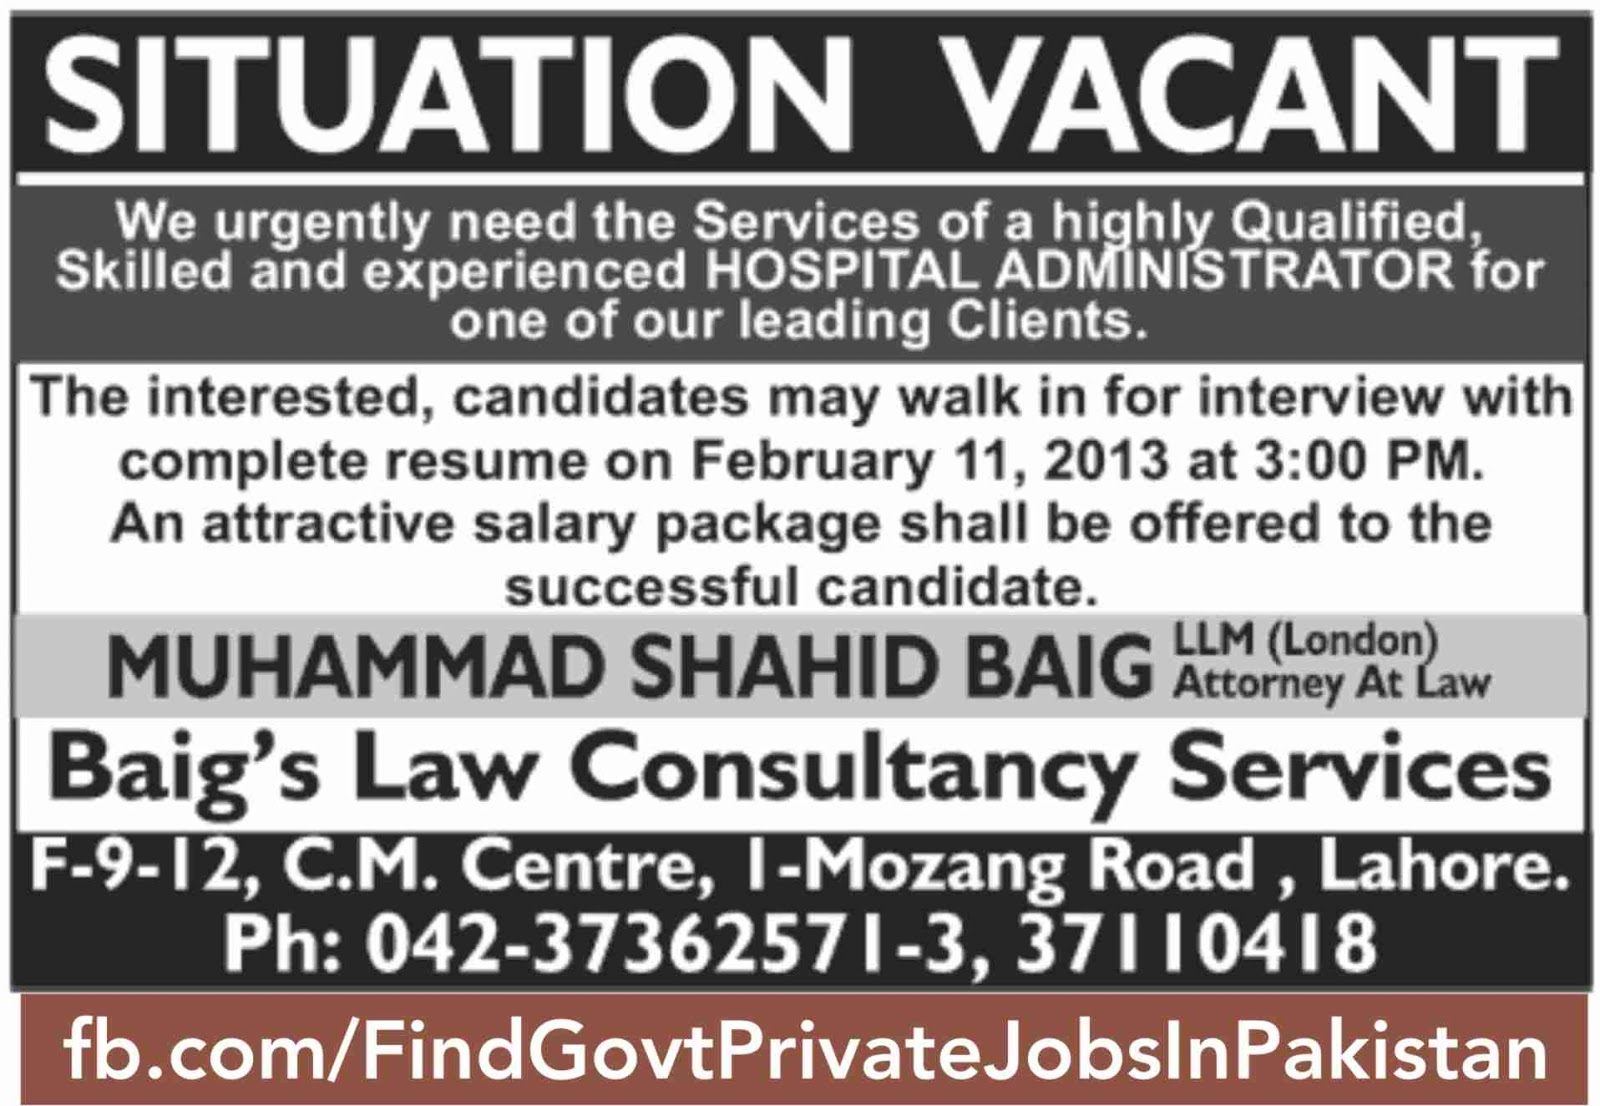 situation vacant job ads